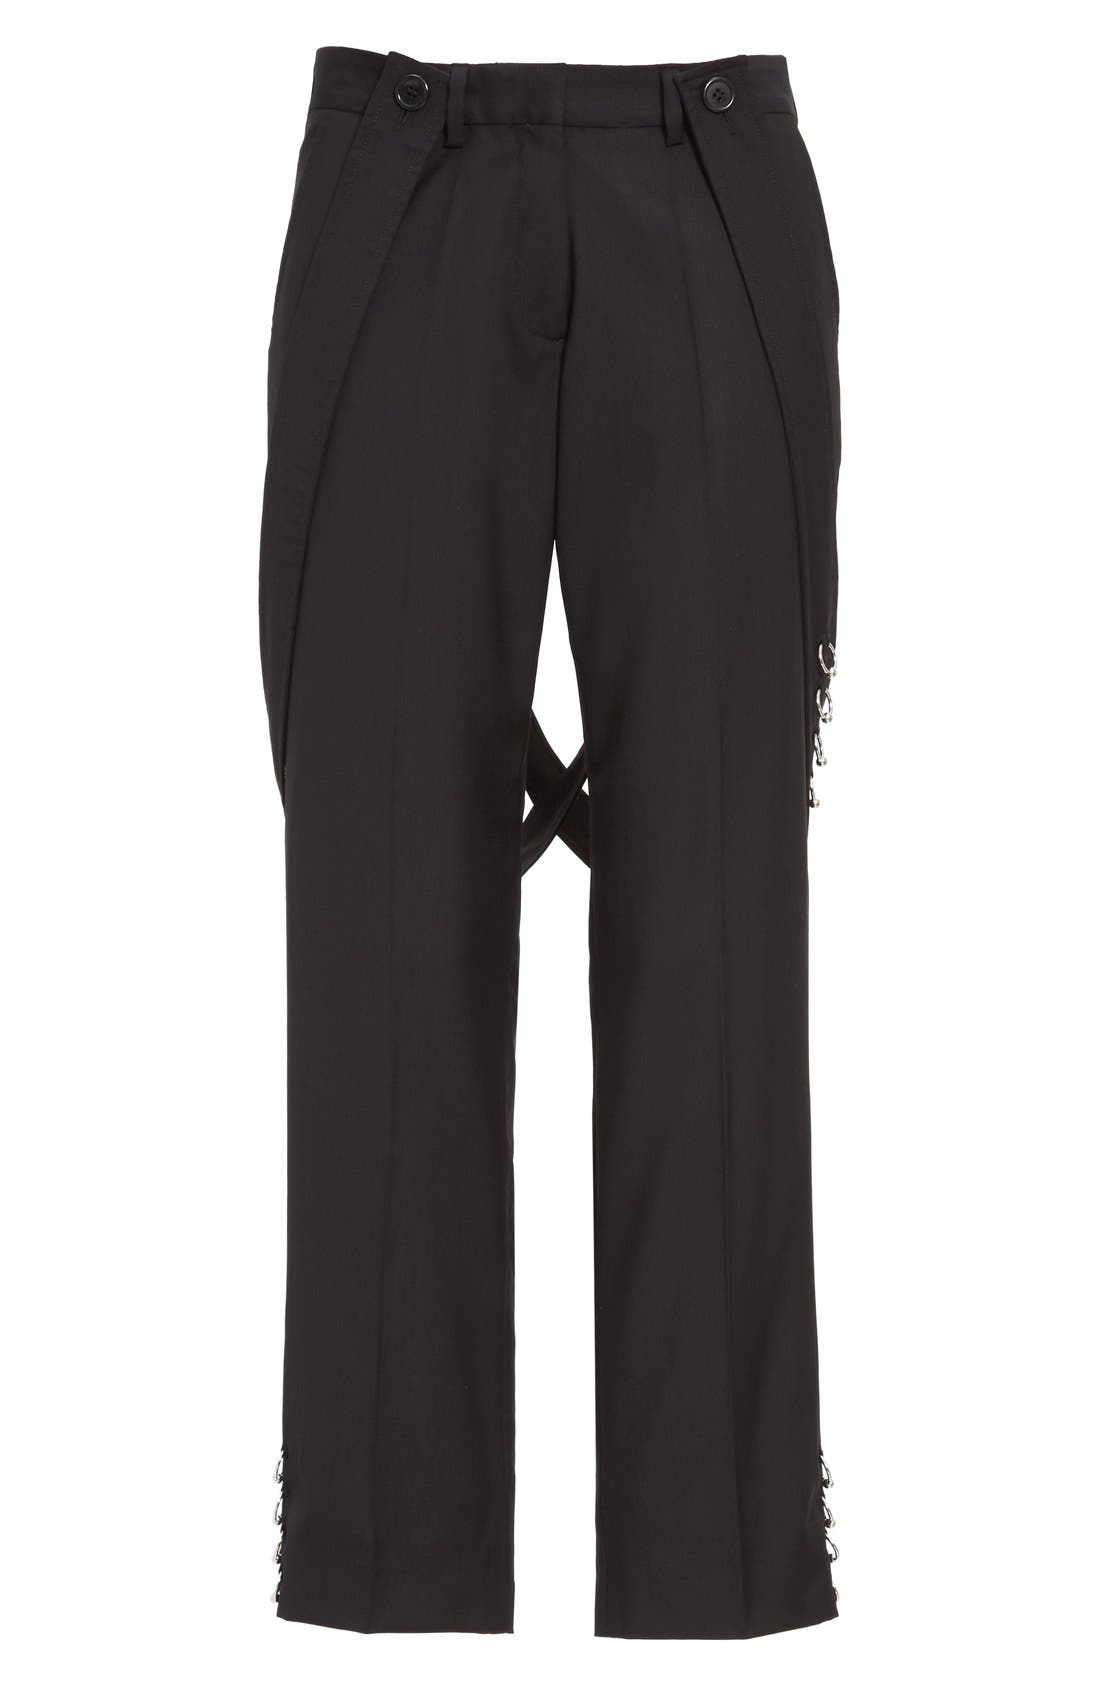 ASHLEY WILLIAMS,                             'Piercing' Wool Ankle Pants with Detachable Suspenders,                             Alternate thumbnail 4, color,                             001